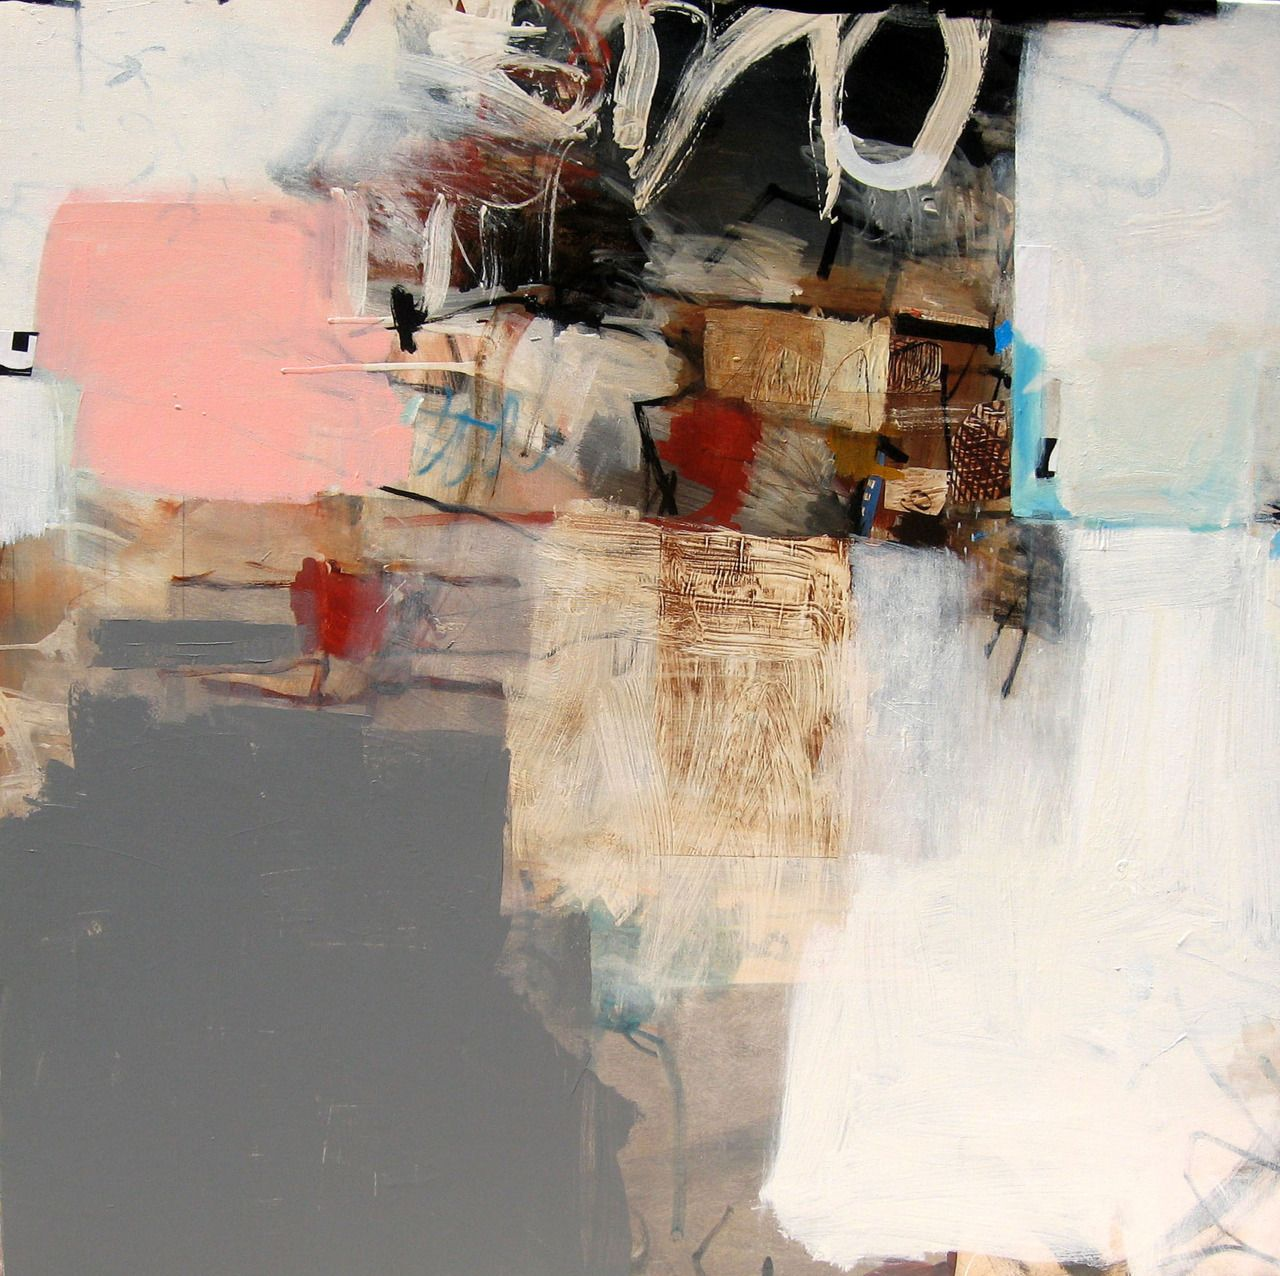 """Charlotte Foust, """"Barricade"""", acrylic on canvas - This is beautiful!"""